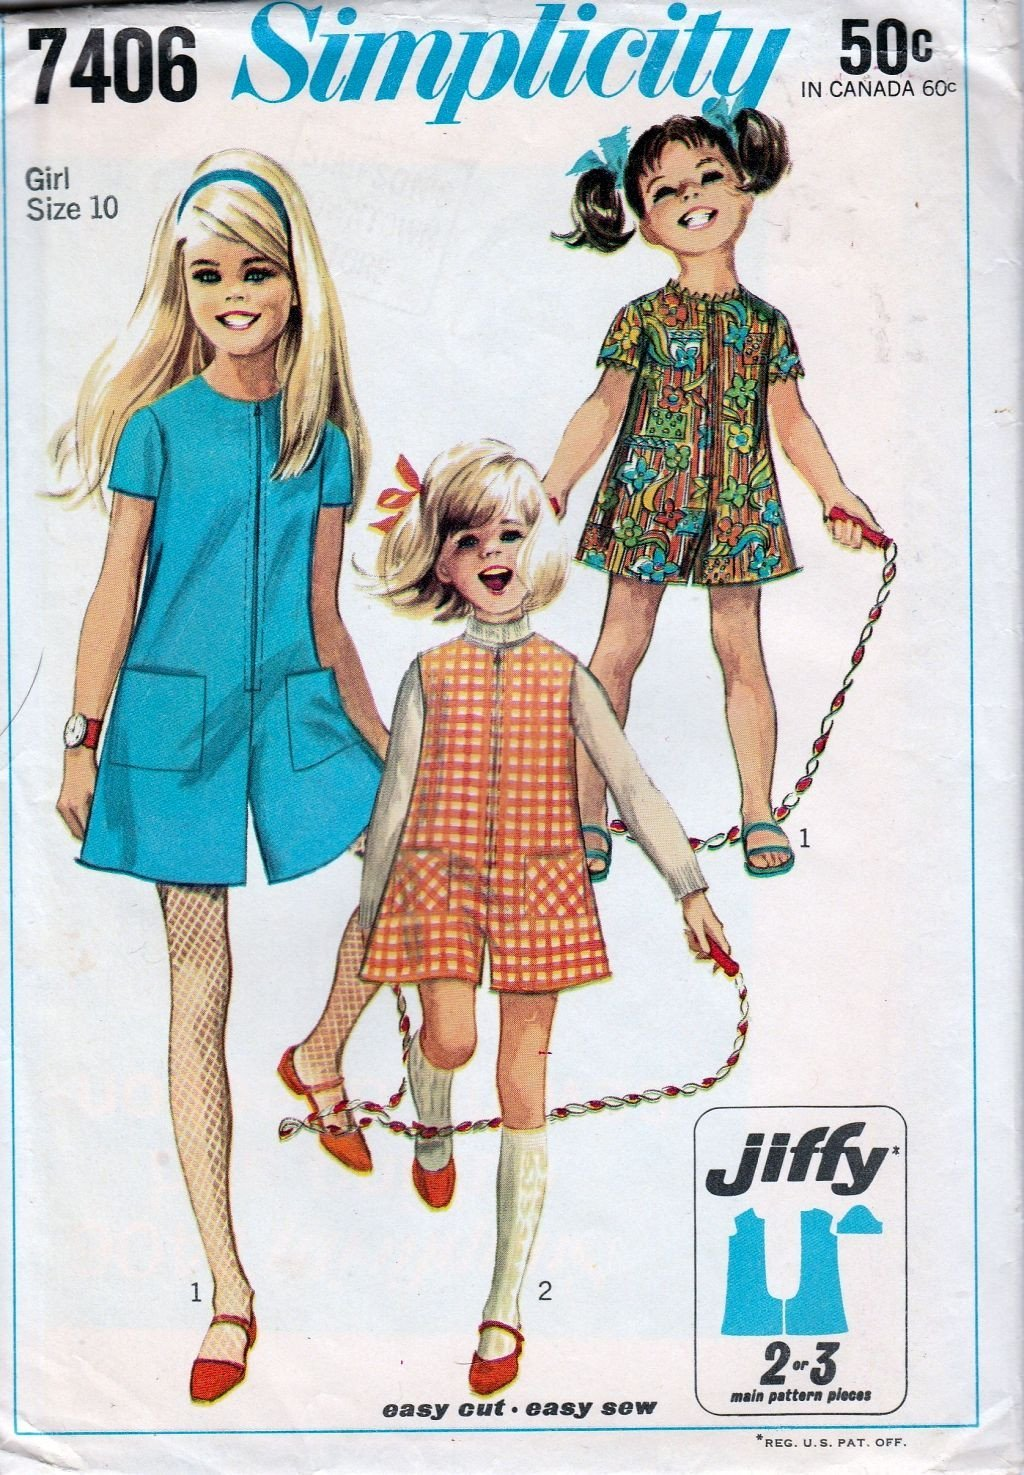 Simplicity 7406 Vintage 1960's Sewing Pattern Girls Pant Dress Jumper Jiffy - VintageStitching - Vintage Sewing Patterns